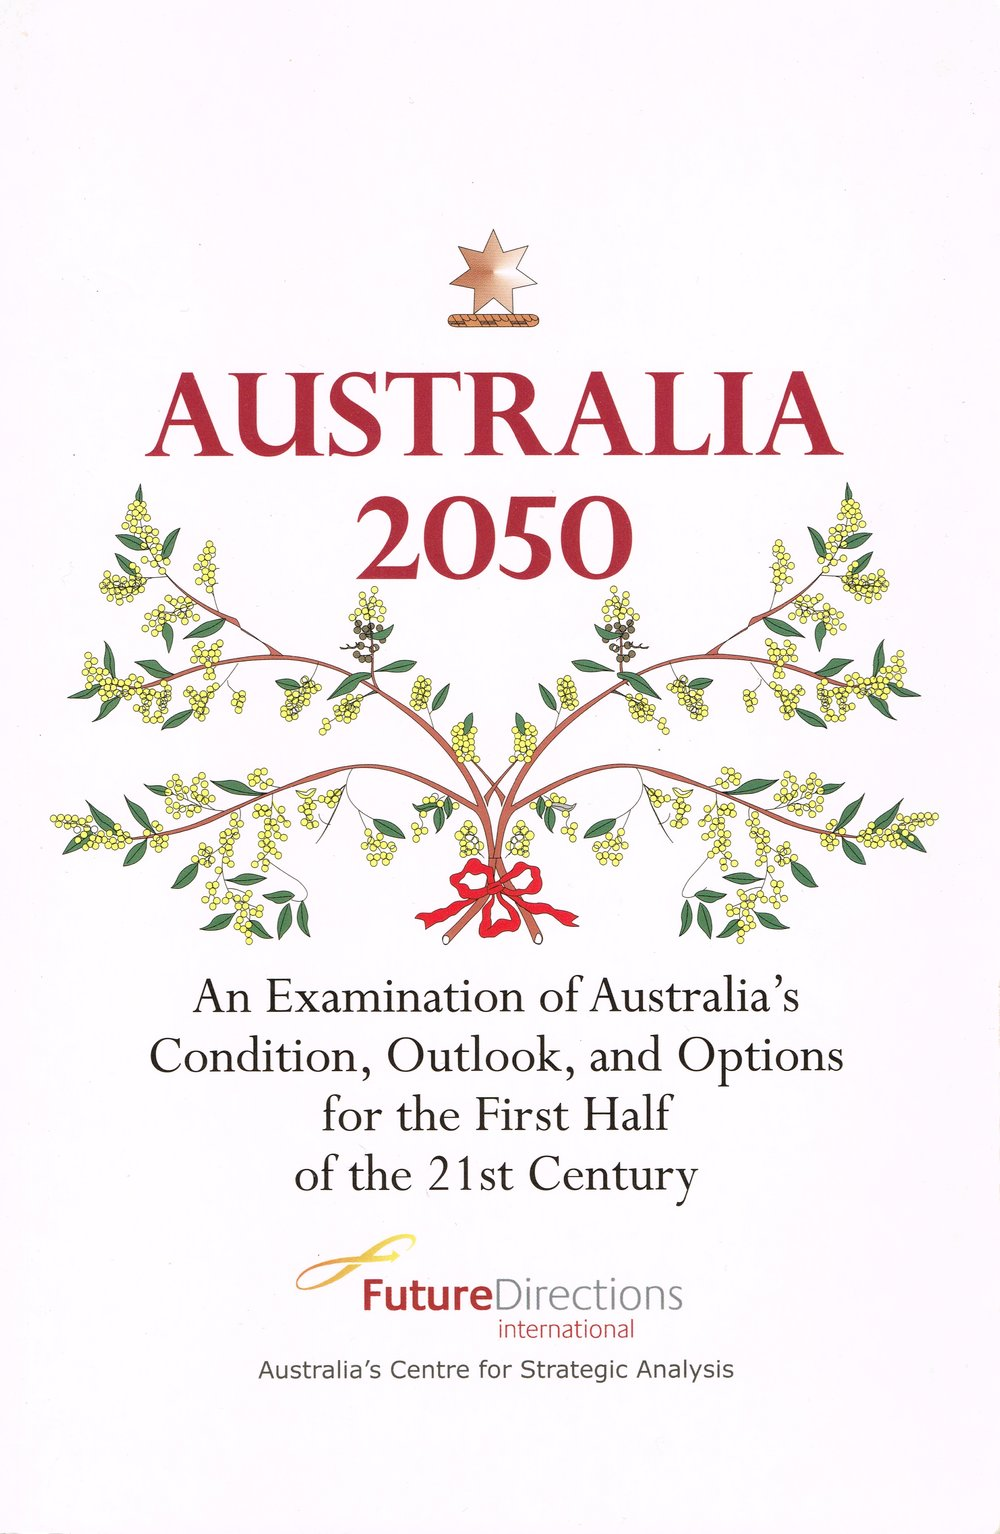 Australia 2050 : An examination of Australia's condition, outlook, and options for the first half of the 21st Century Future Directions International